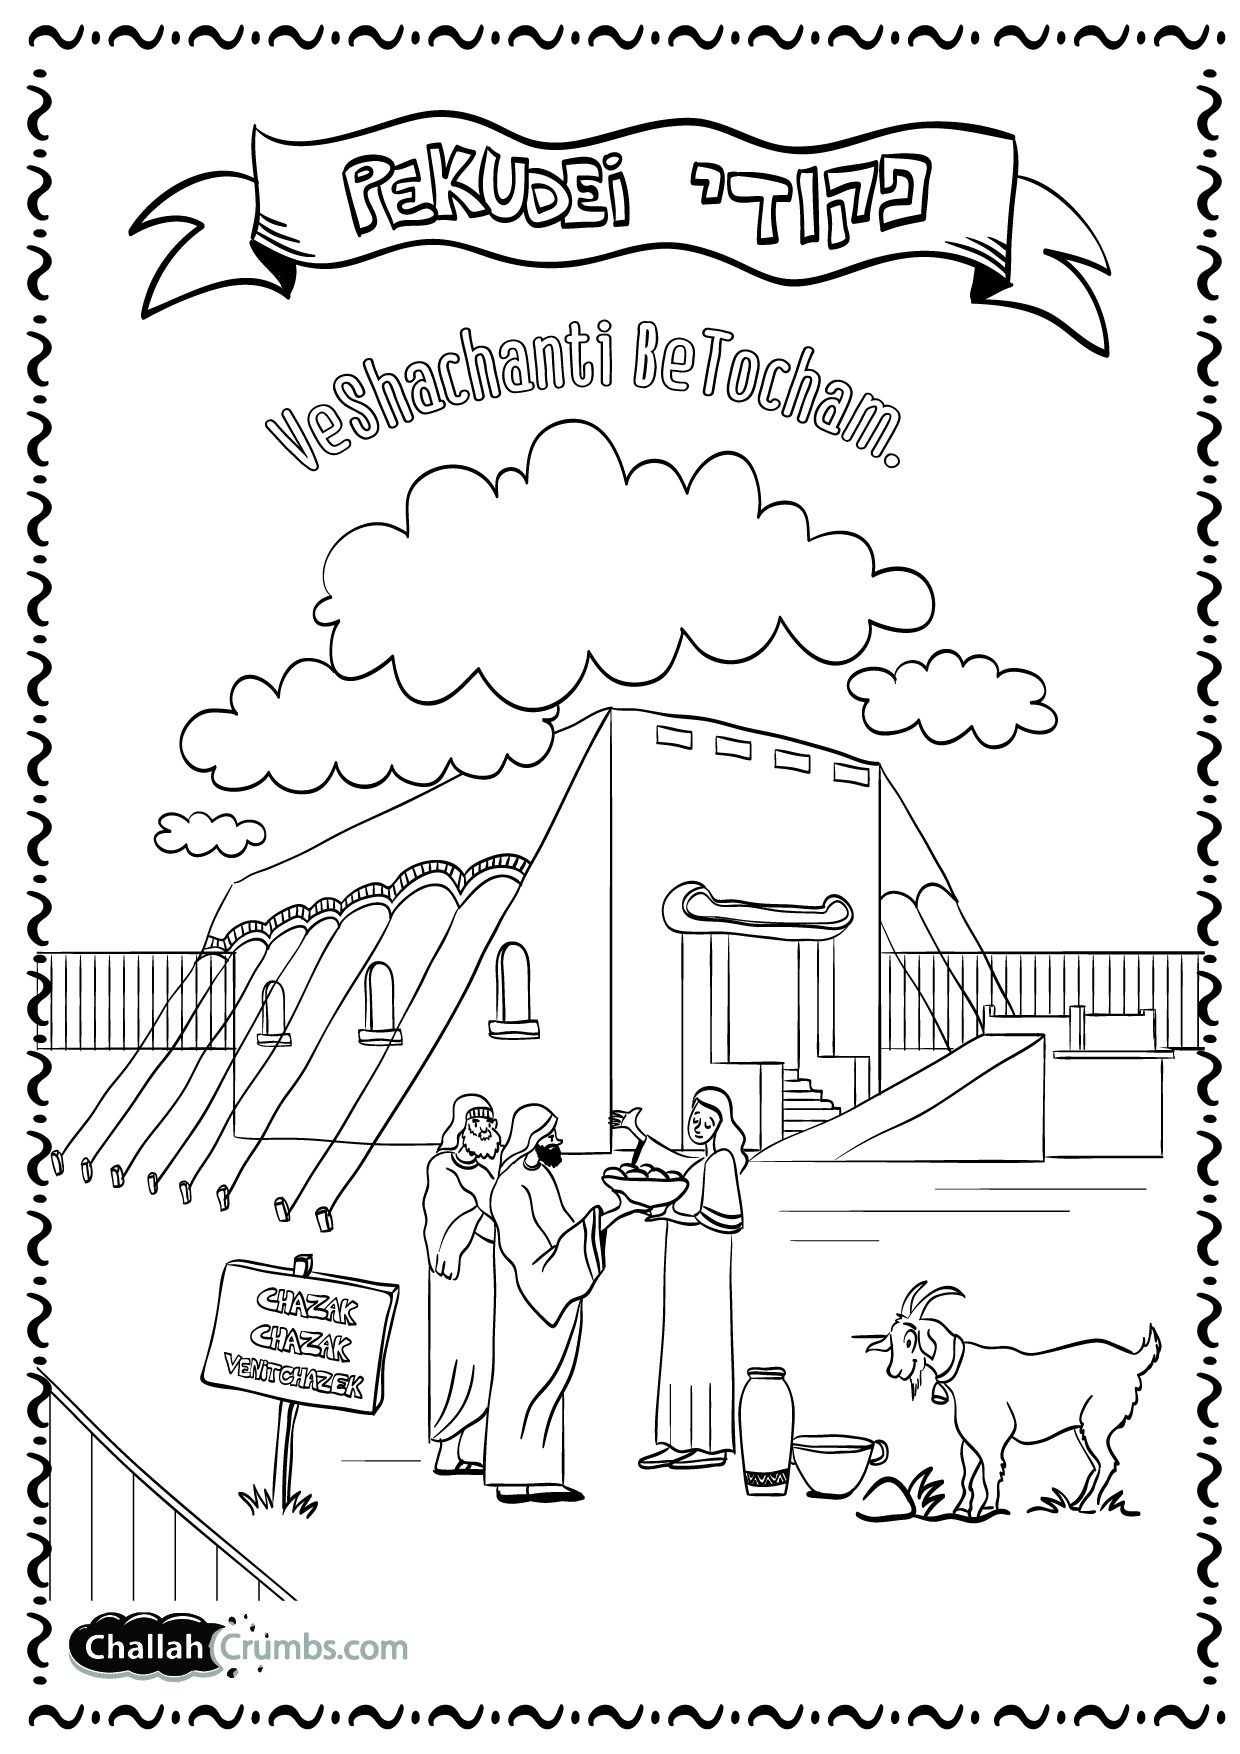 Free Printable Pictures Of The Tabernacle